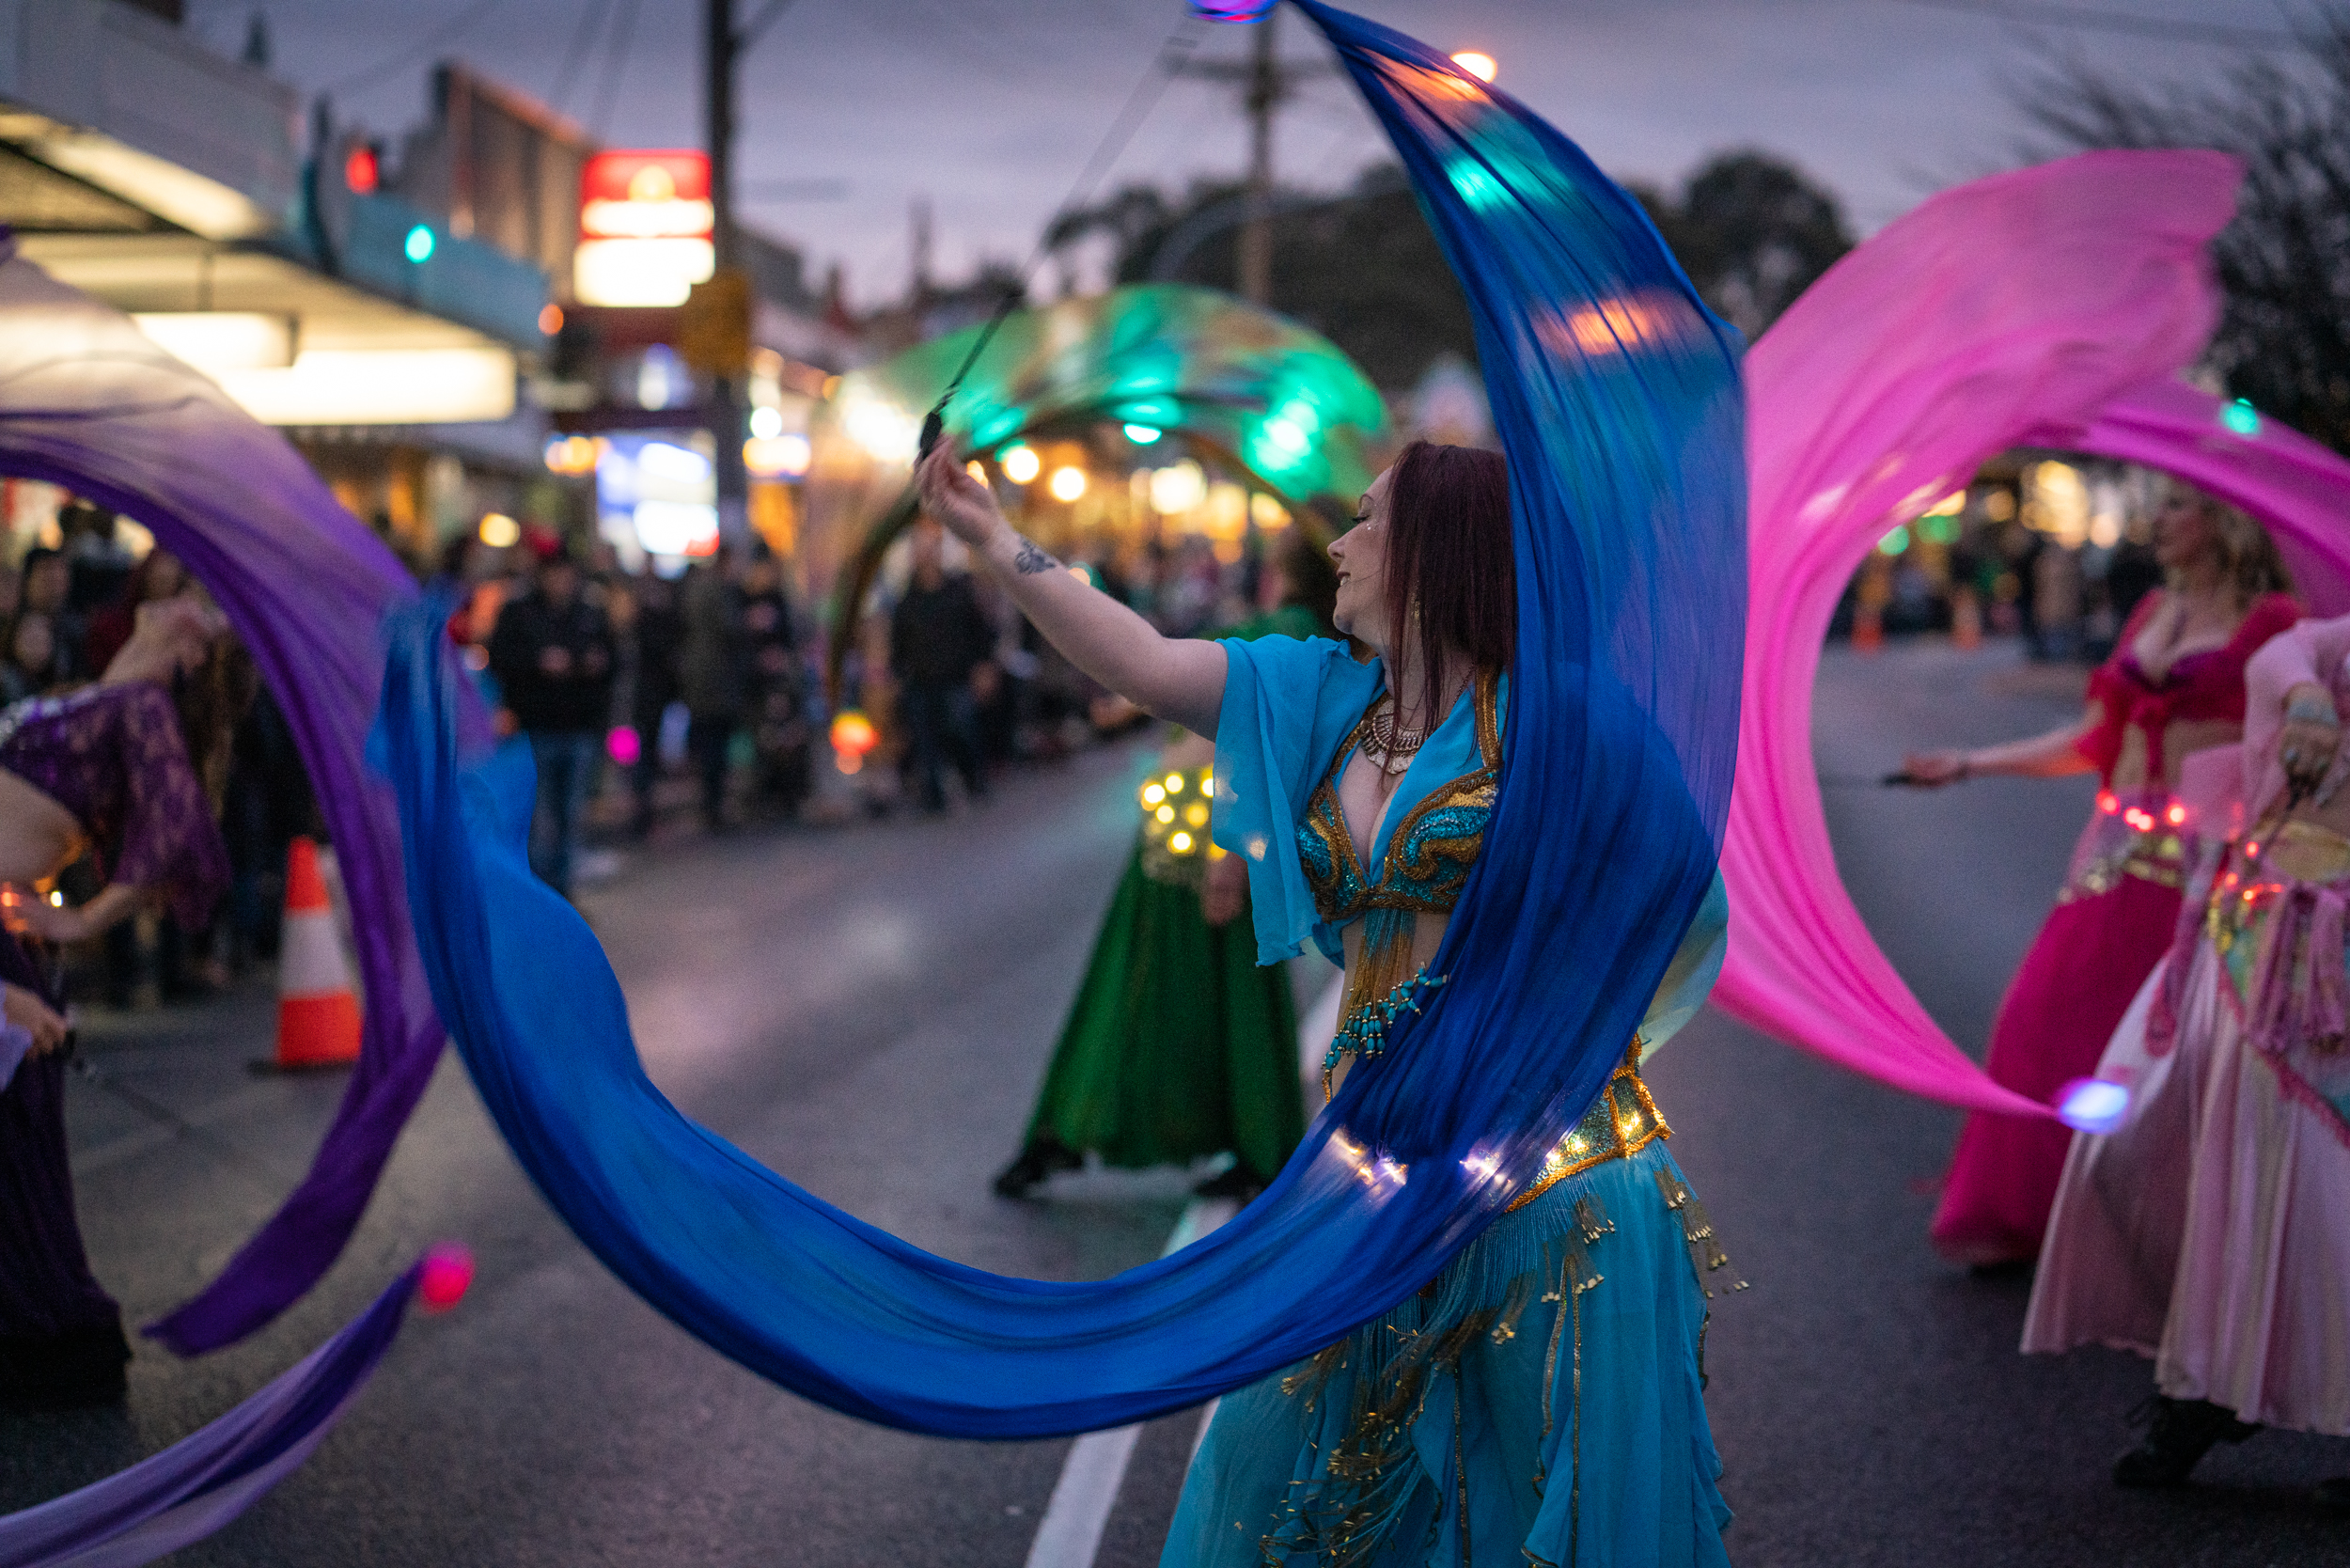 Belly Dancing at the Lantern Parade for the Winter Solstice celebration in Belgrave, Vic